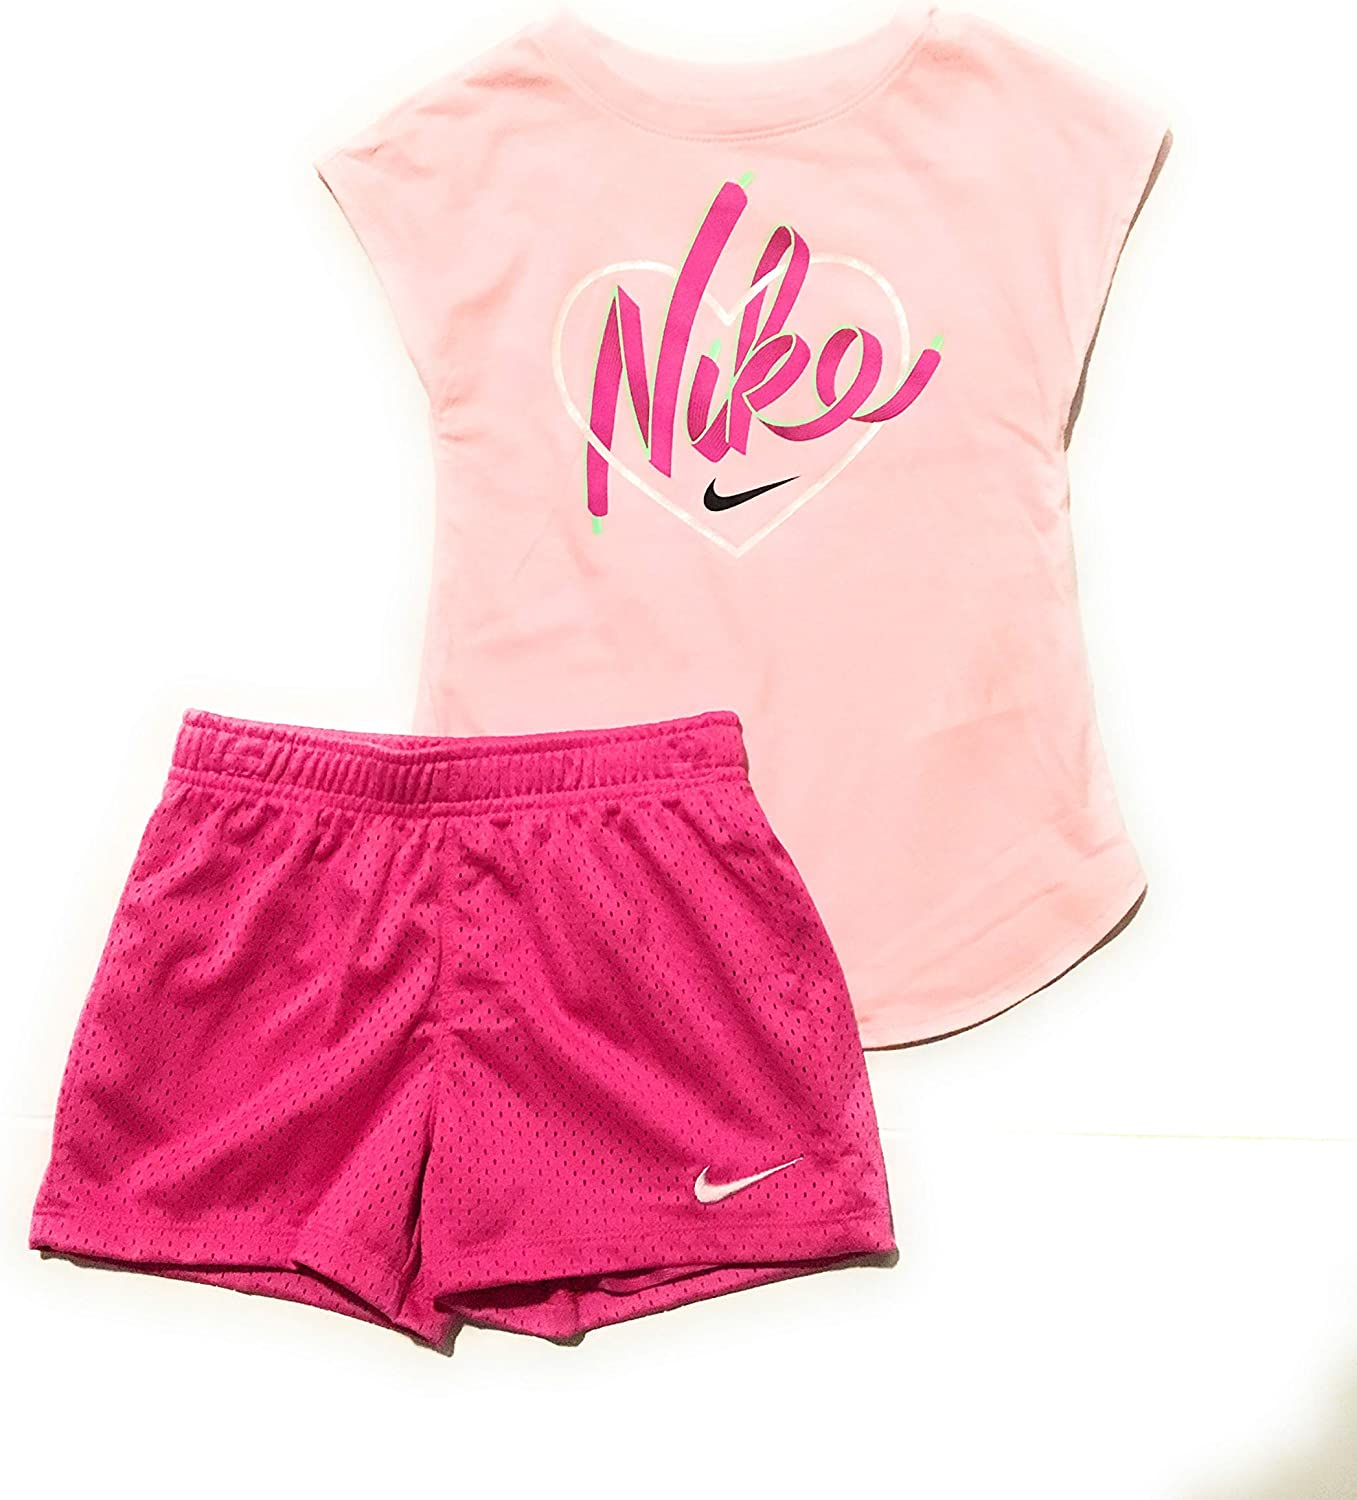 Nike Set Girls Shirt Shorts Set Size 6X